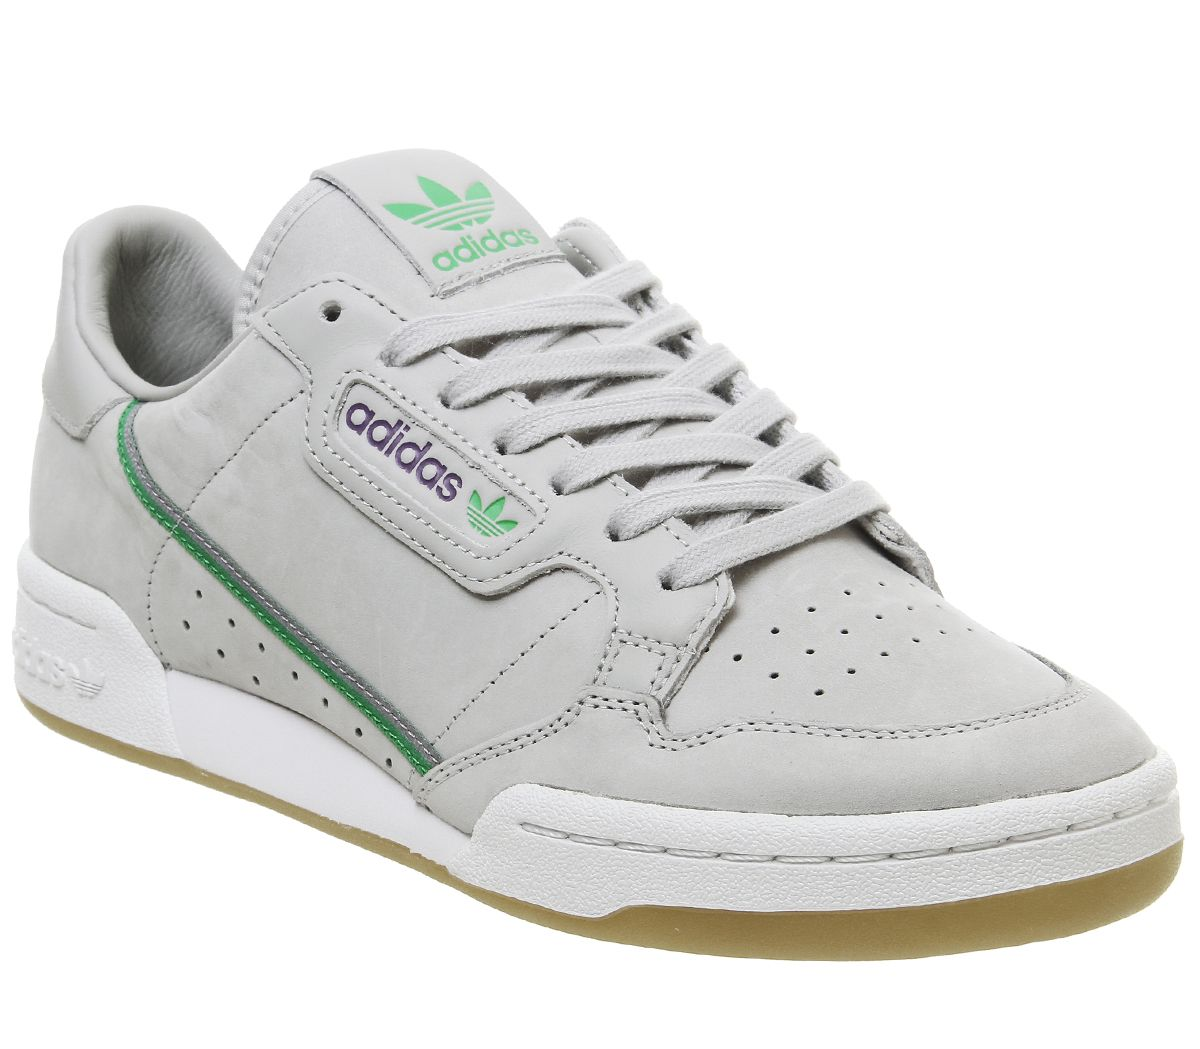 buy popular 9194d 32bae Sentinel Adidas Continental 80S Trainers Grey Green Purple Gum Tfl Trainers  Shoes